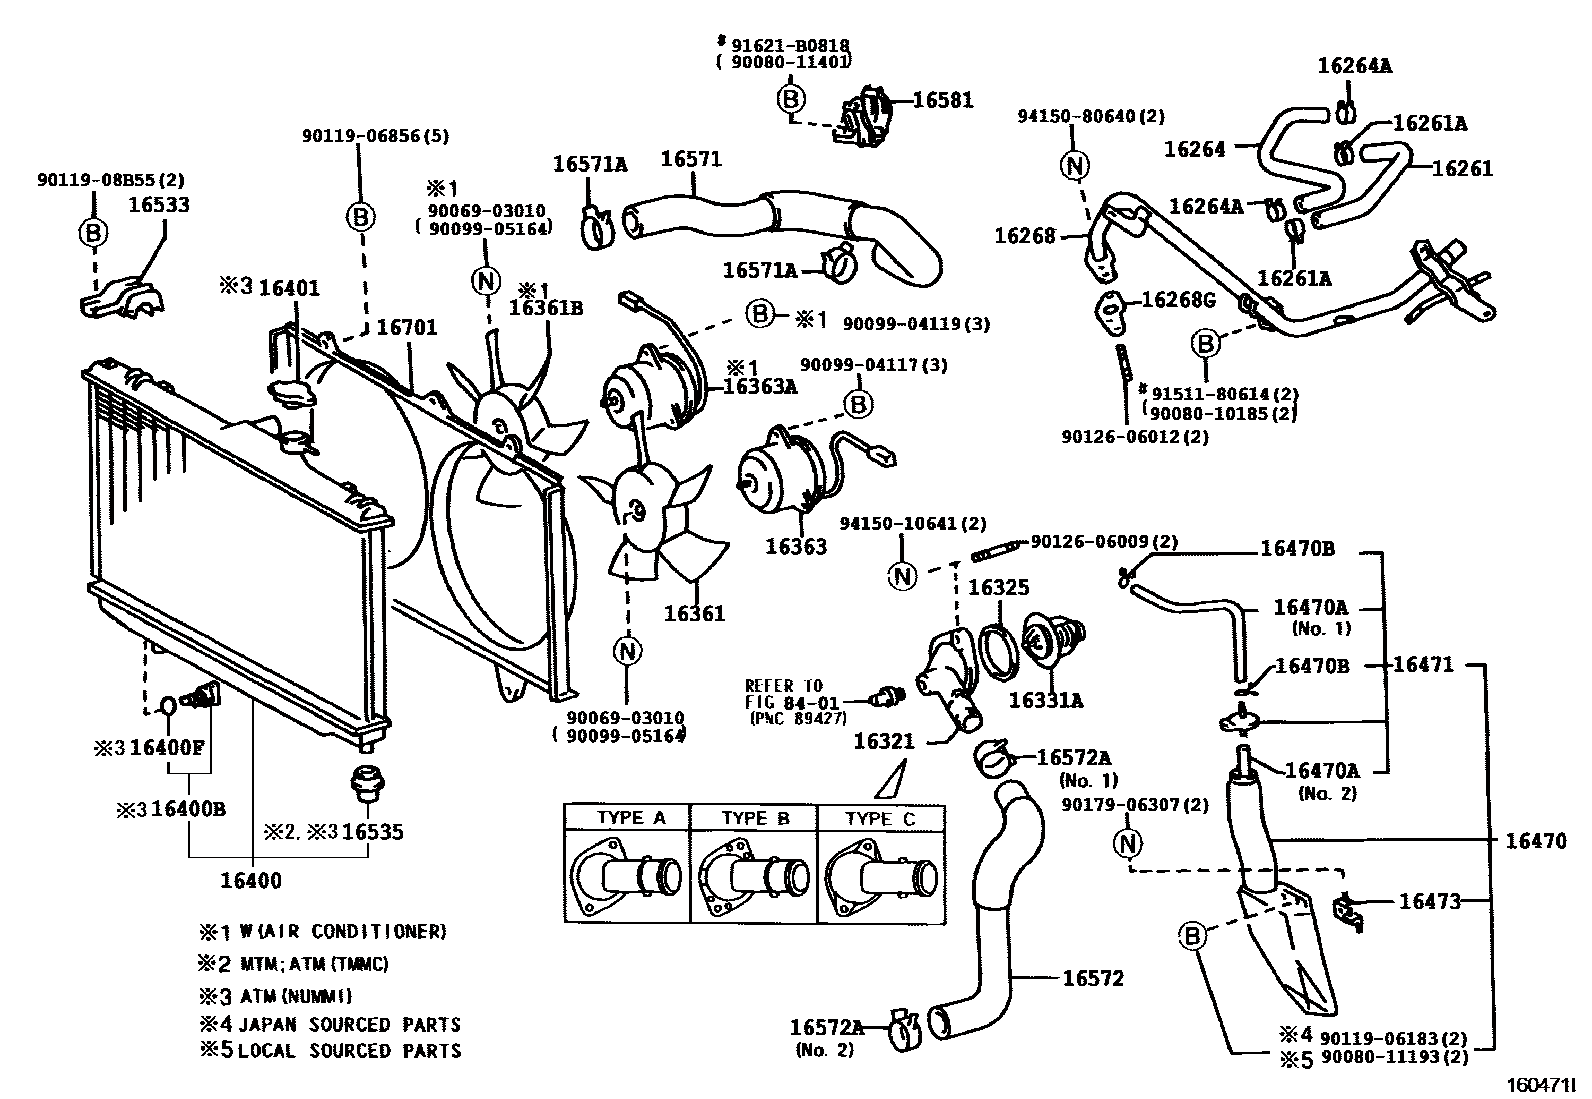 e39 cooling system wiring diagram with 2008 Vw Cooling Fan Fuse Location on 2002 Bmw 325i Engine Diagram furthermore 98 Bmw Engine Diagram additionally Bmw 525i Engine Diagram together with 121898637055 additionally 90 Mazda Miata Engine Diagram.